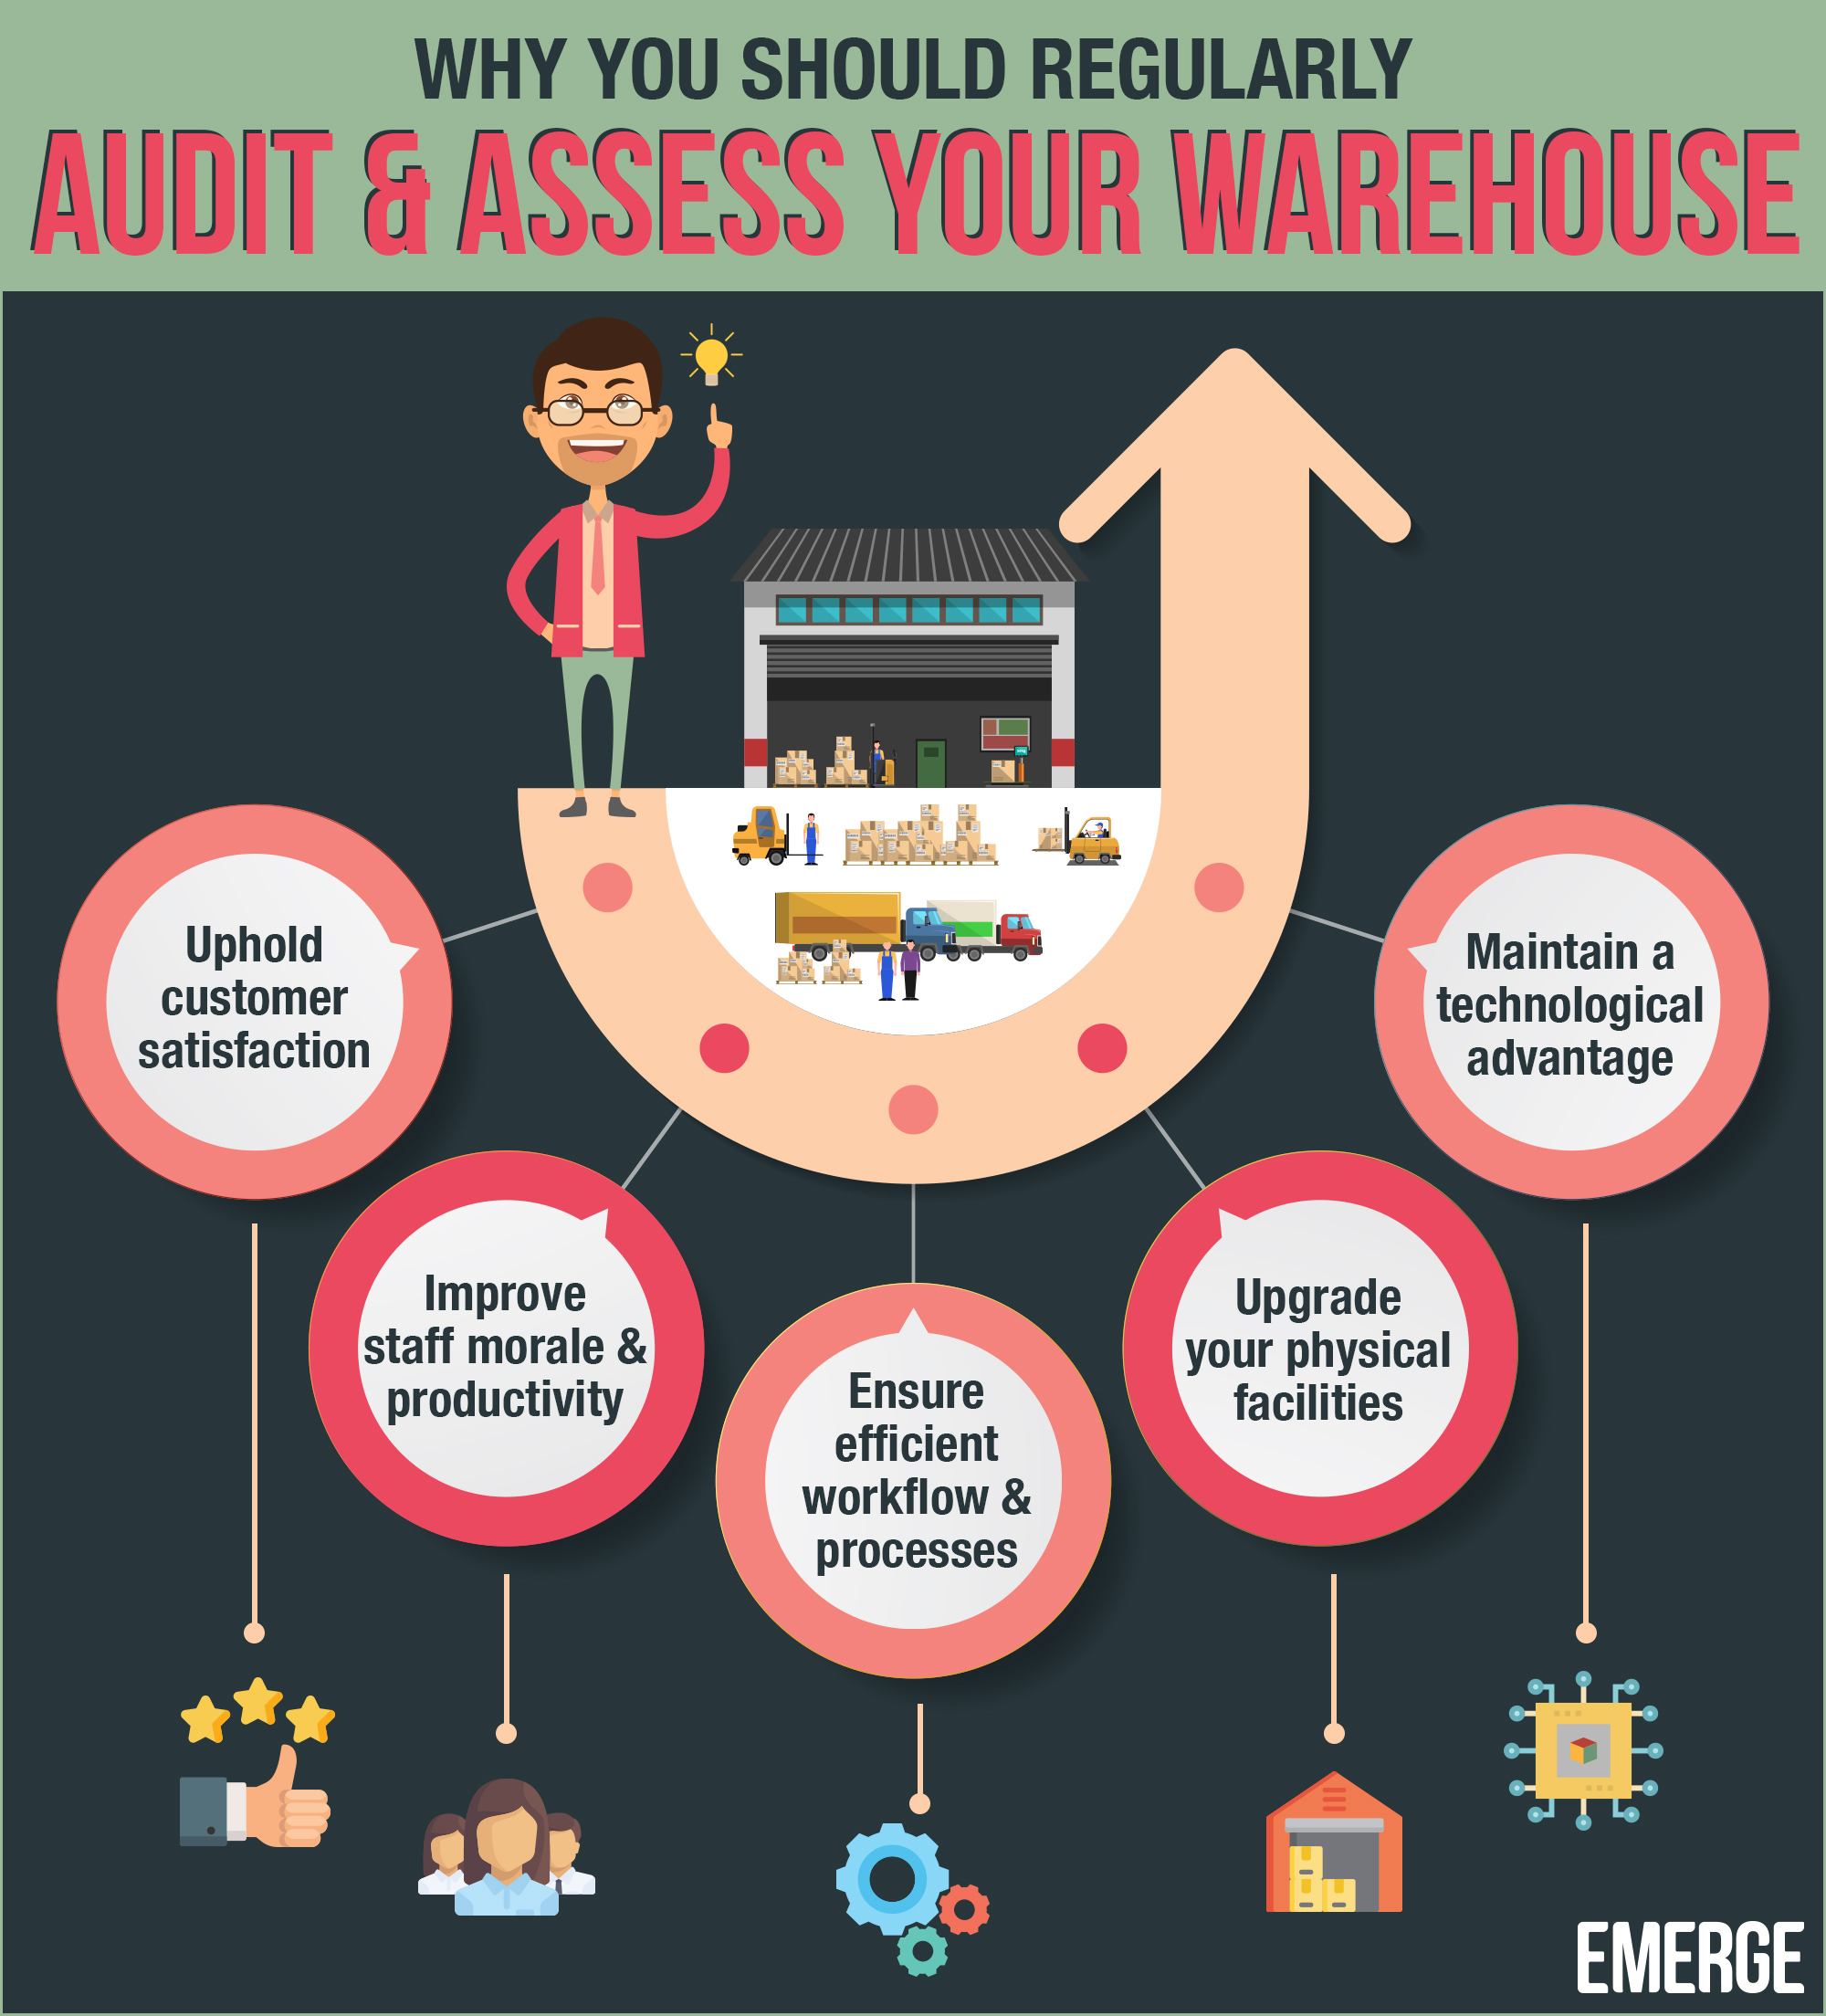 aa20fbe3 4 Reasons Why You Should Audit and Assess Your Warehouse - EMERGE